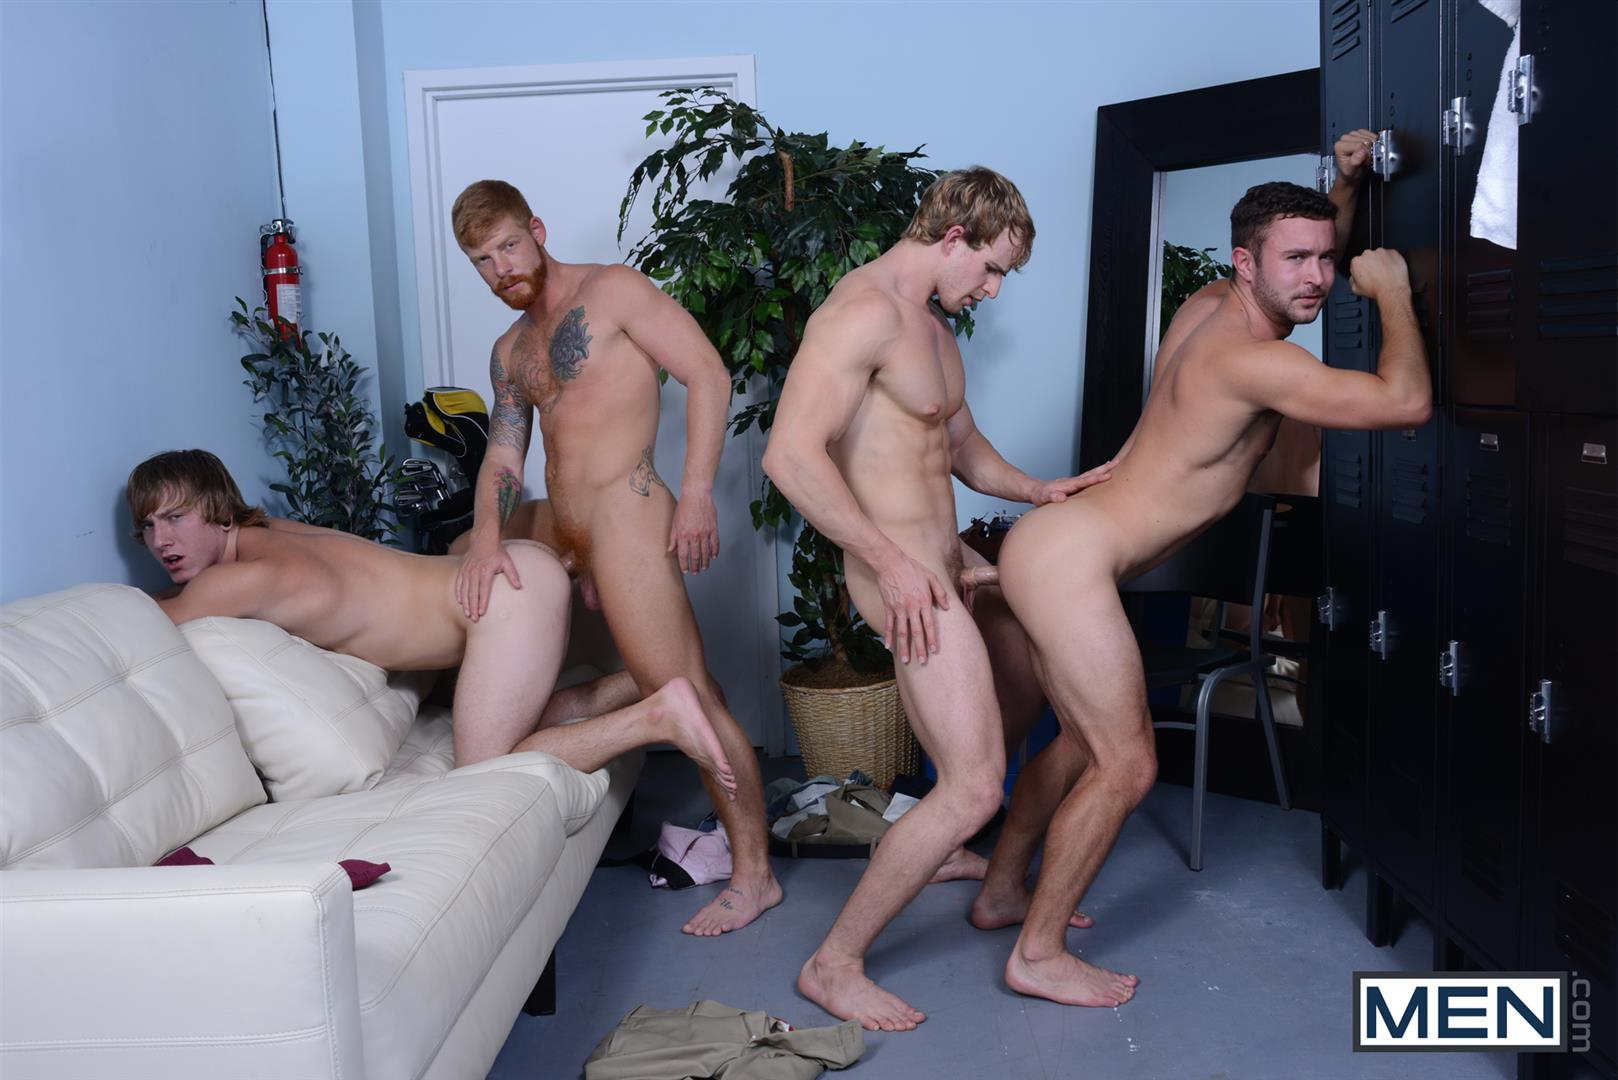 Men Jizz Orgy Swingers Bennett Anthony and Cameron Foster and Colt Rivers and Tom Faulk Fucking Bathroom Amateur Gay Porn 32 Hung Golfing Buddies Fucking In The Bathroom and Clubhouse